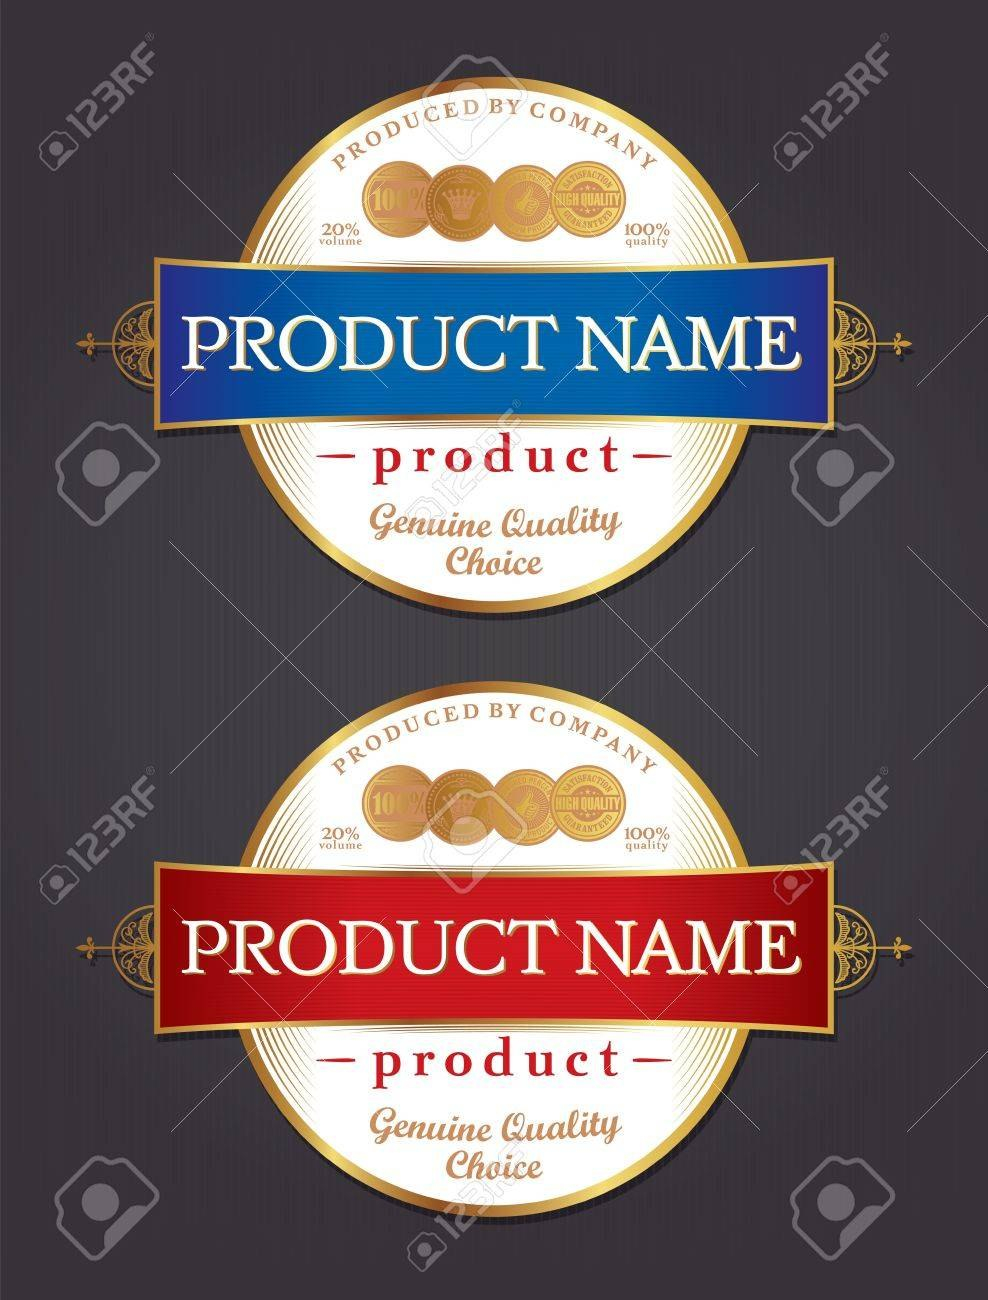 Product Label Design Template Retro Style Royalty Free Cliparts In Product Label Design Templates Free